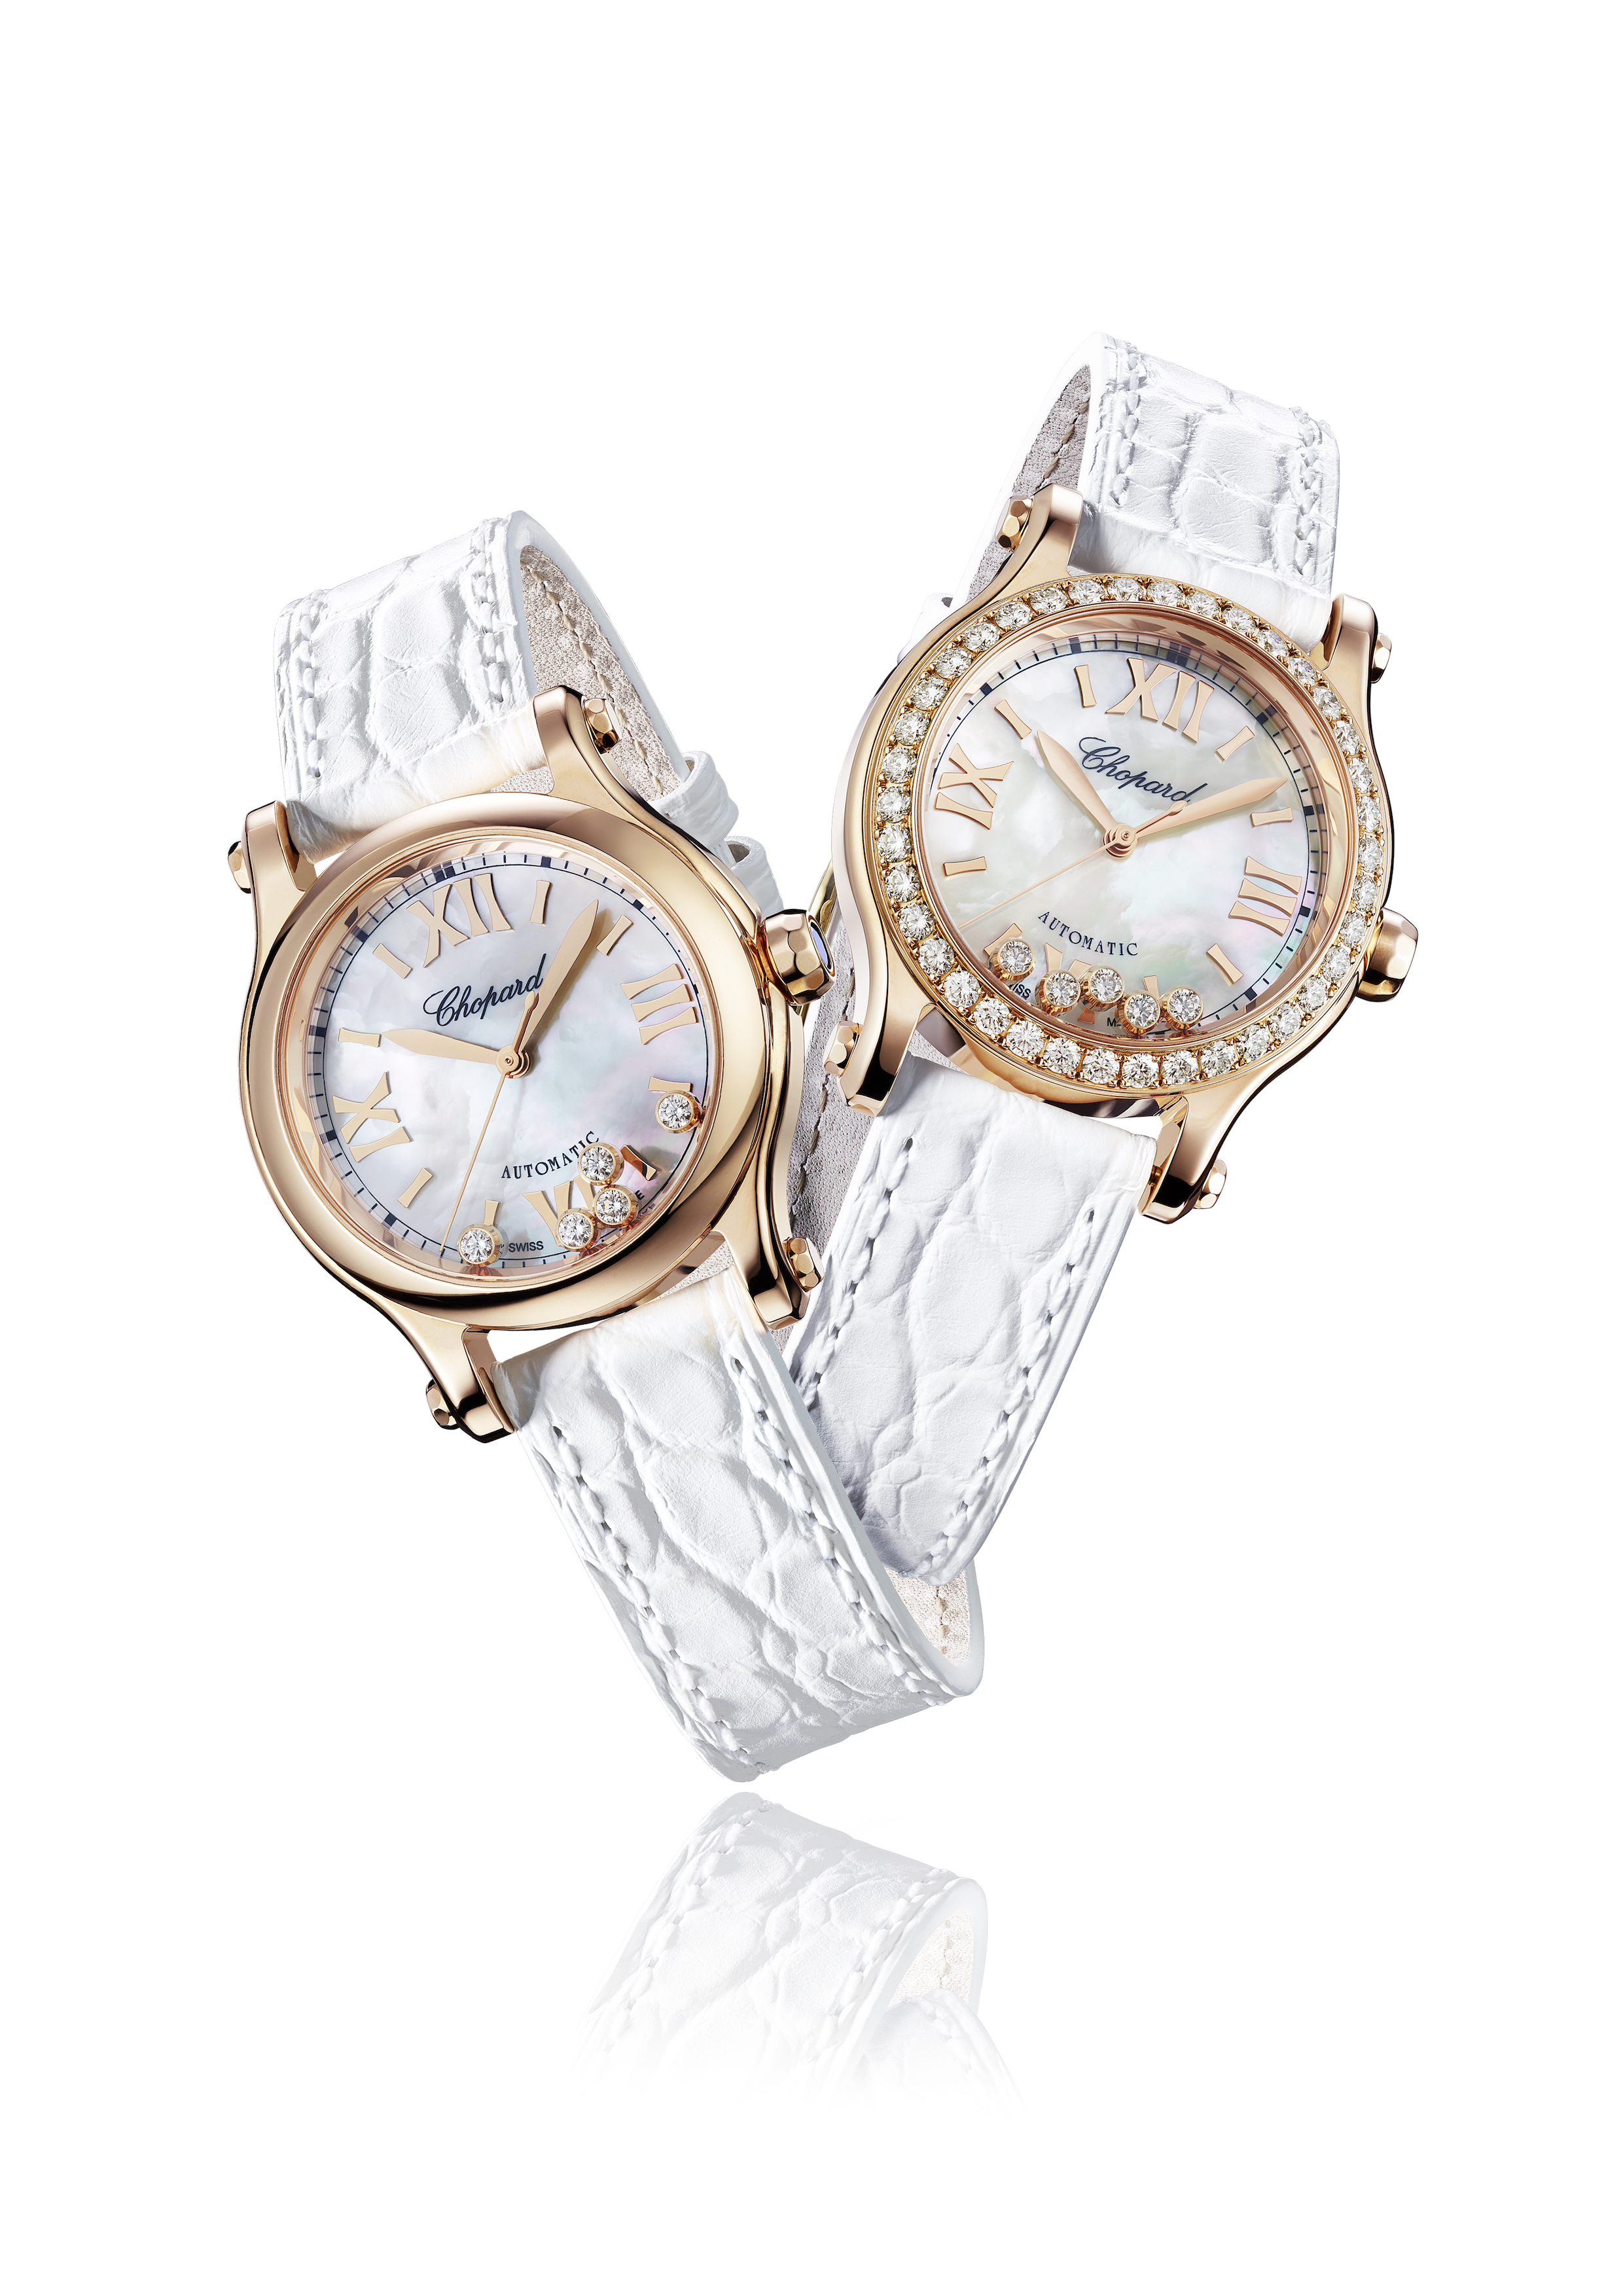 Happy Sport watches with white dials and rose gold cases. (Photo: Courtesy of Chopard)